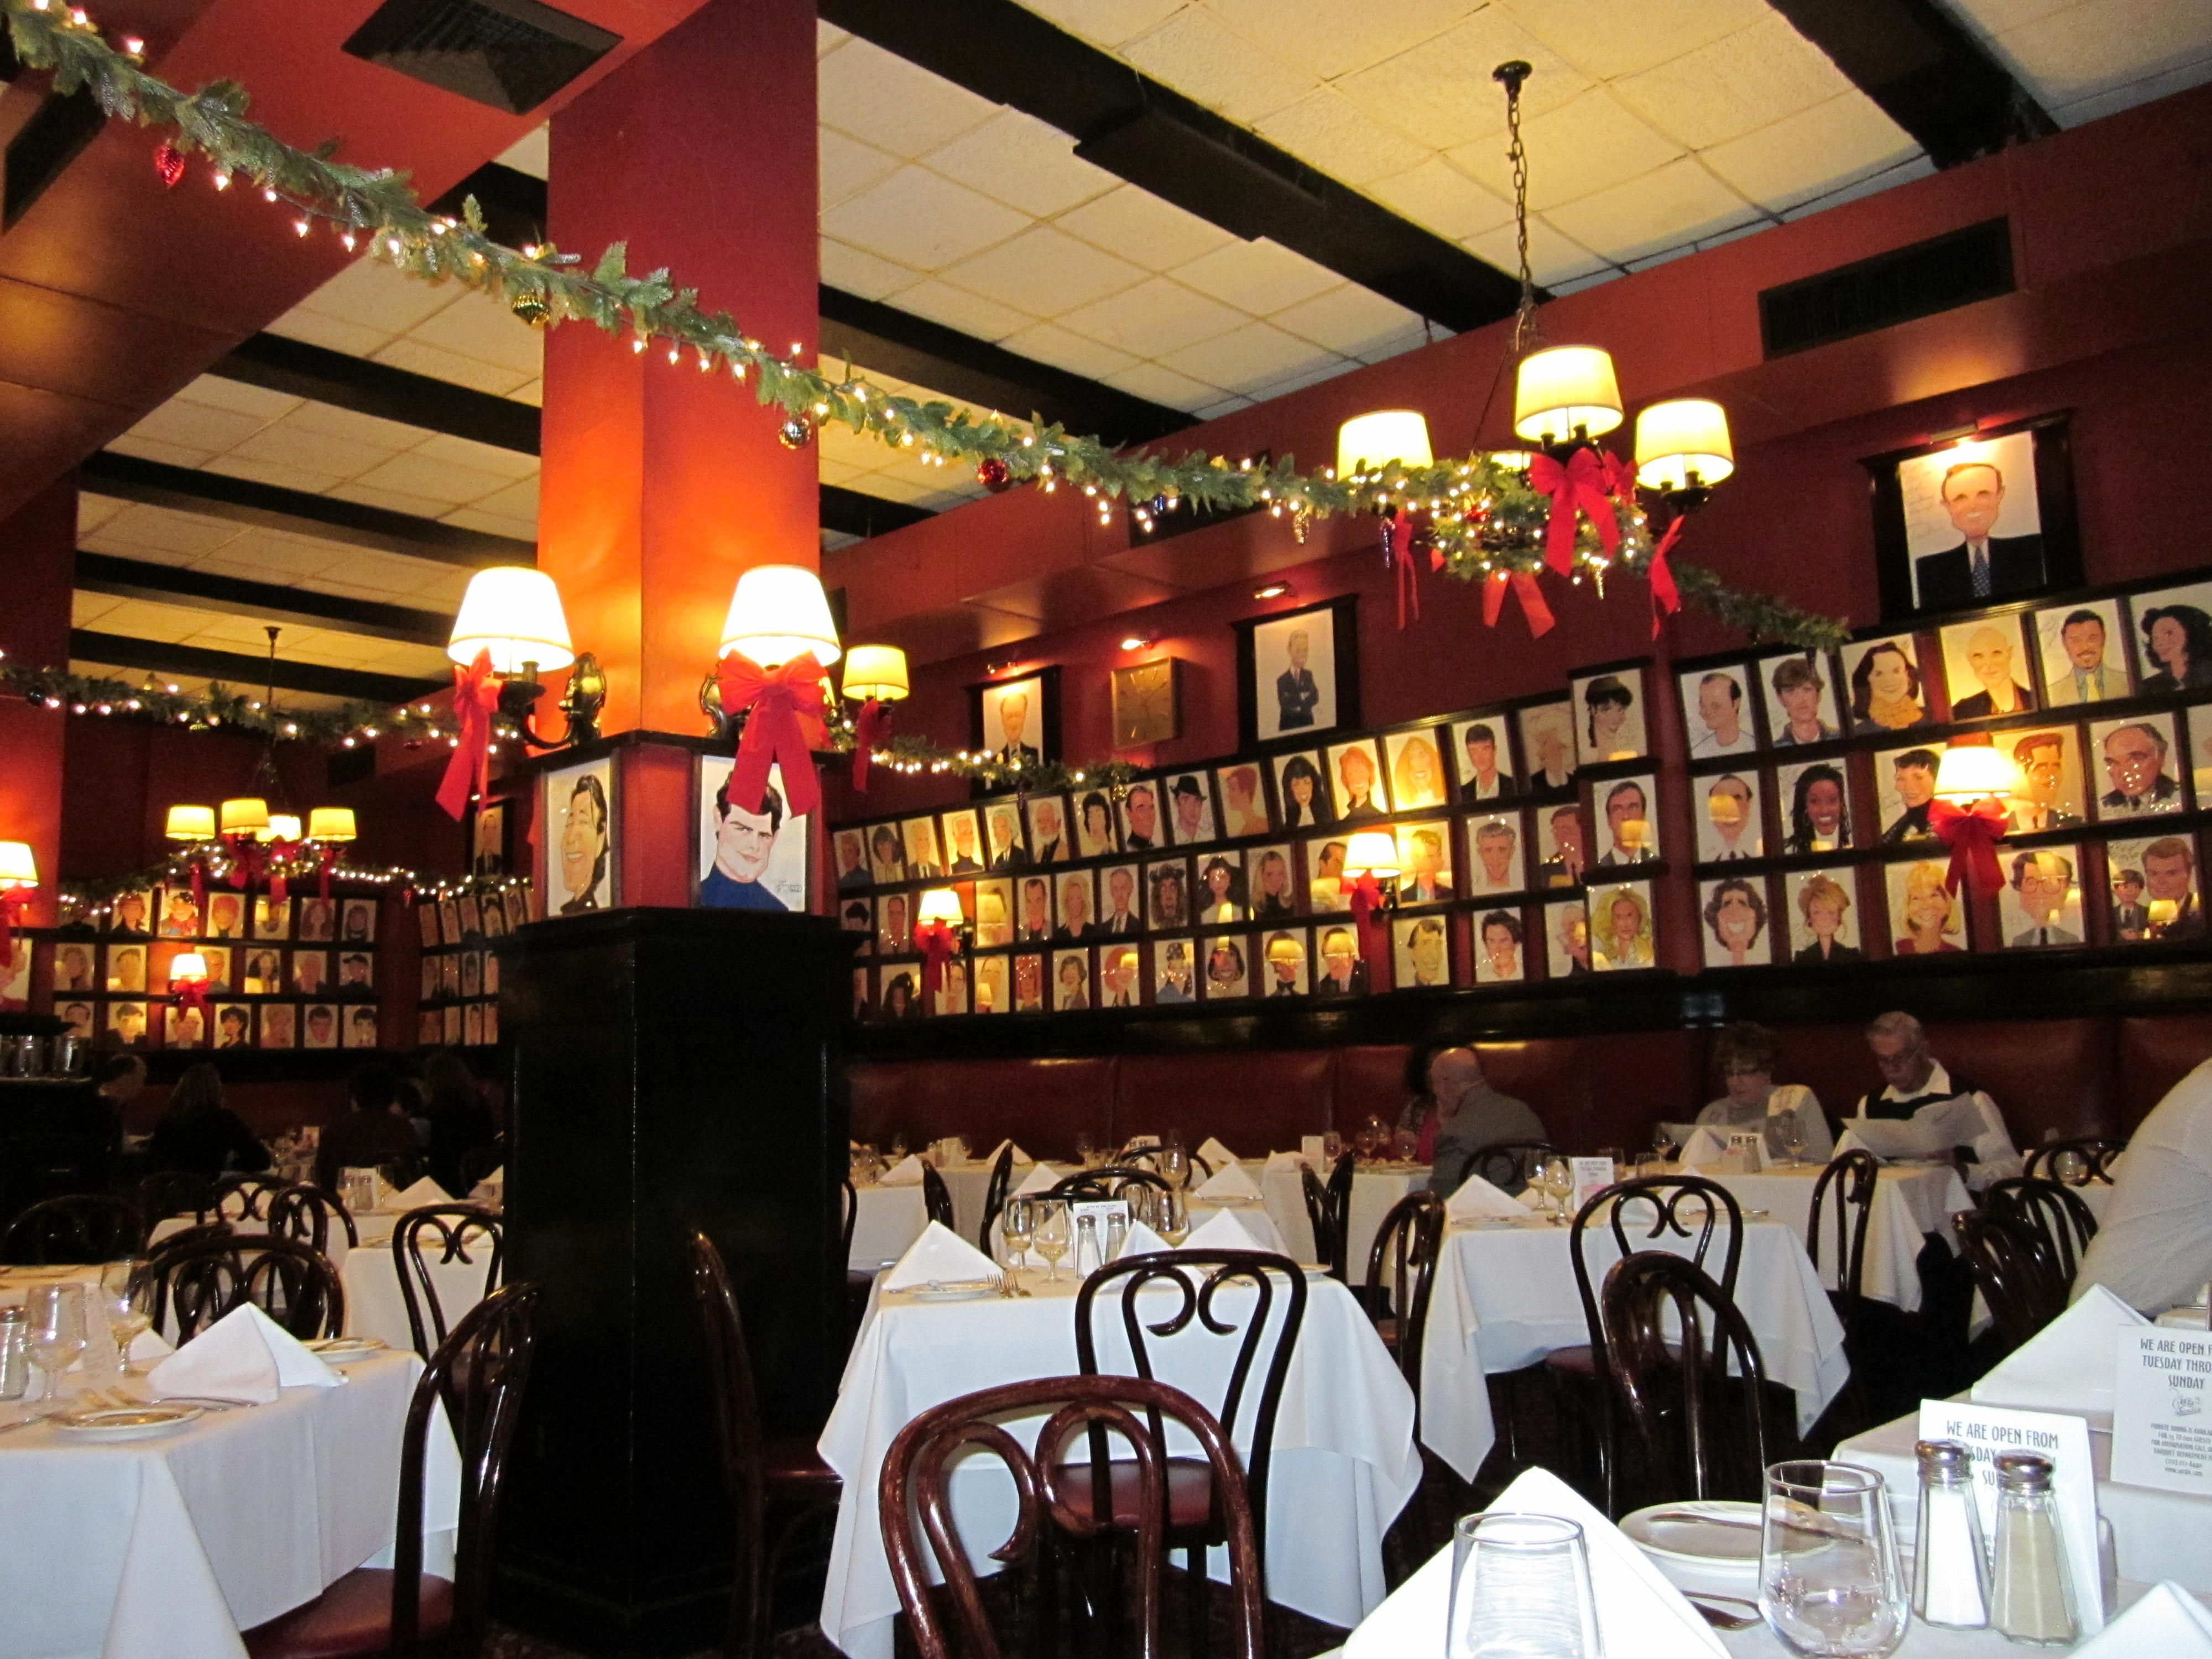 Sardi S Theater District In New York One Of The Oldest And Most Famous Pre Theater Restaurants Ever Phot Nyc Restaurants New York Travel Theater District